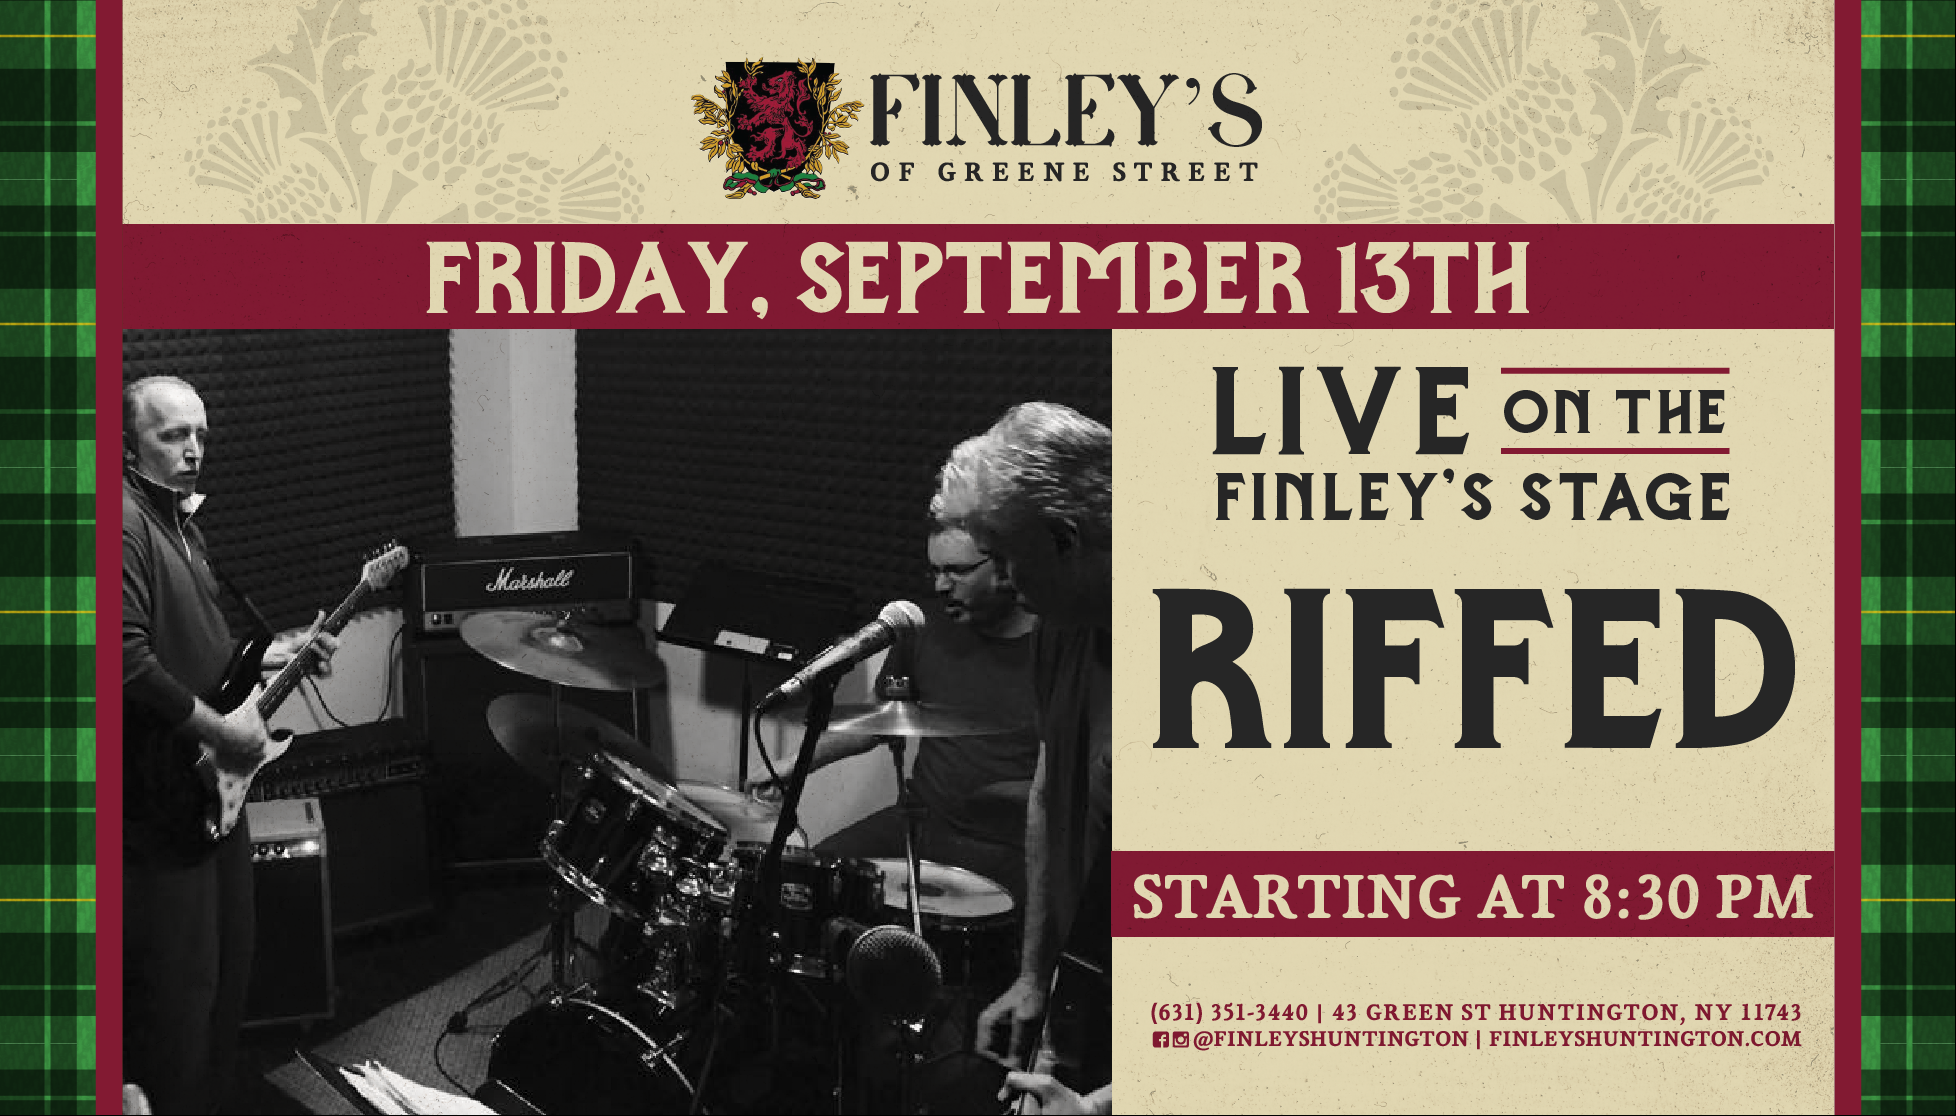 Flyer for live music with Riffed at 8:30pm on Friday, September 13th